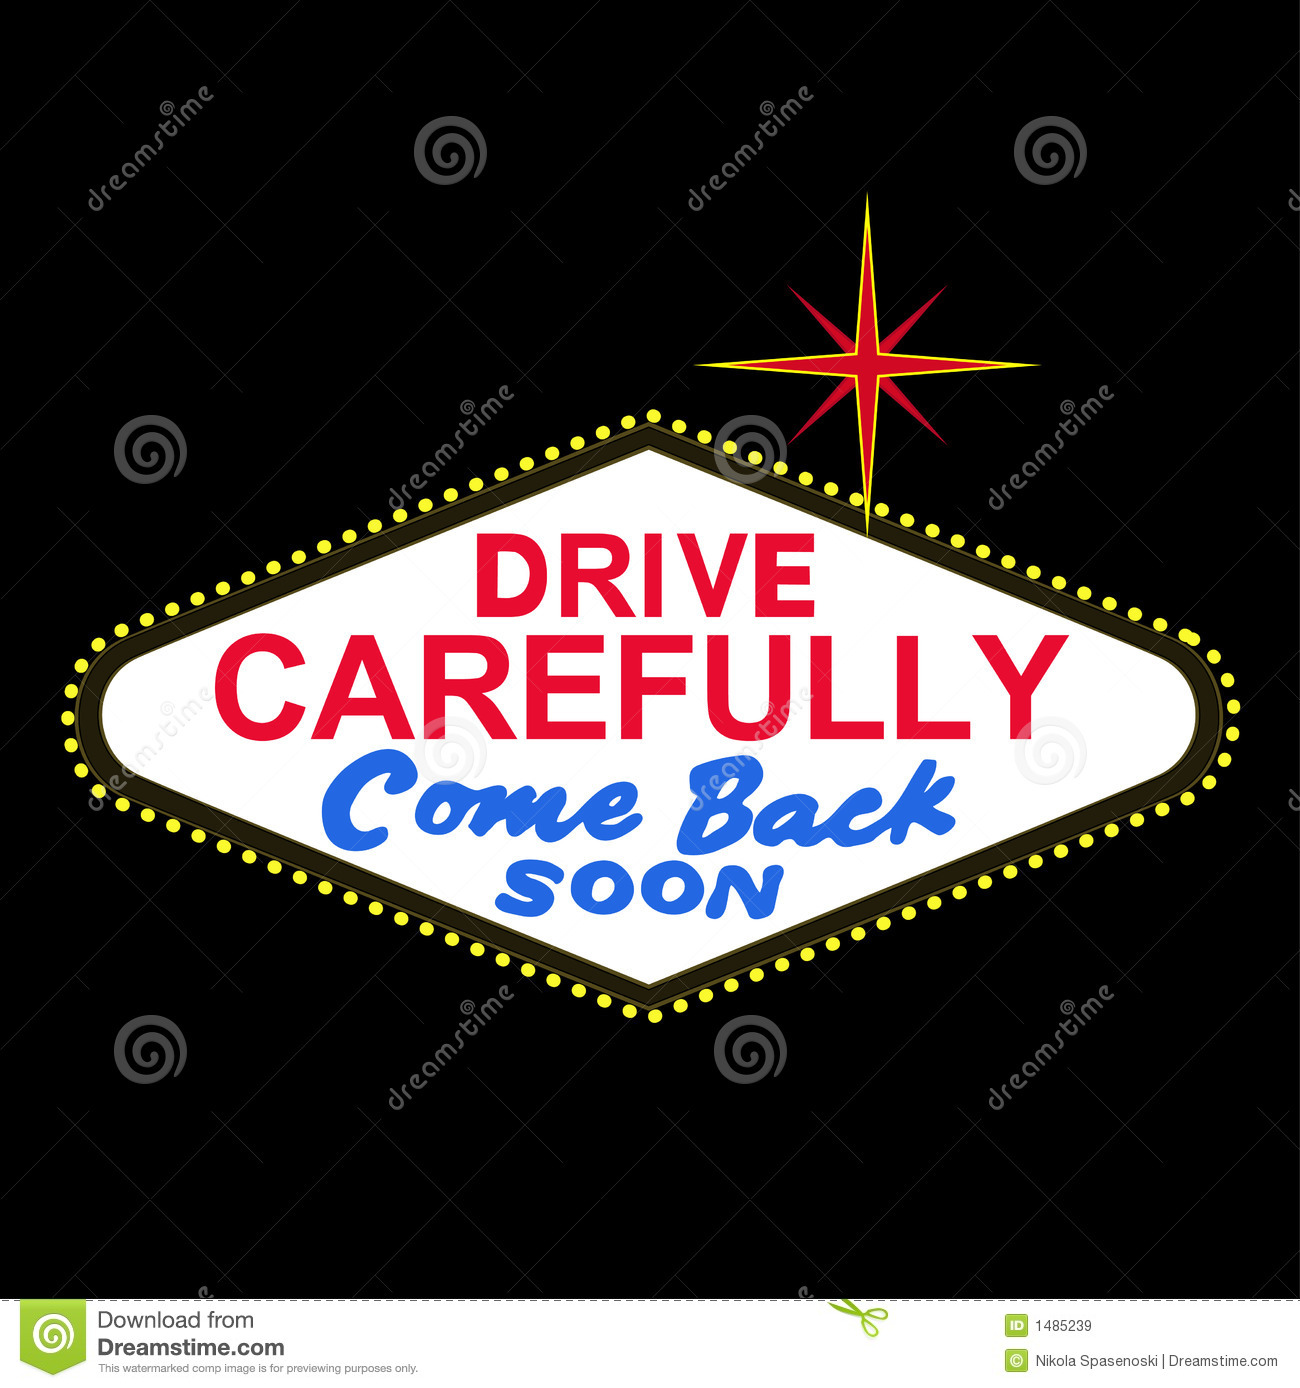 VECTOR: backside of Las Vegas sign at night: drive carefully, come back soon (EPS format available)